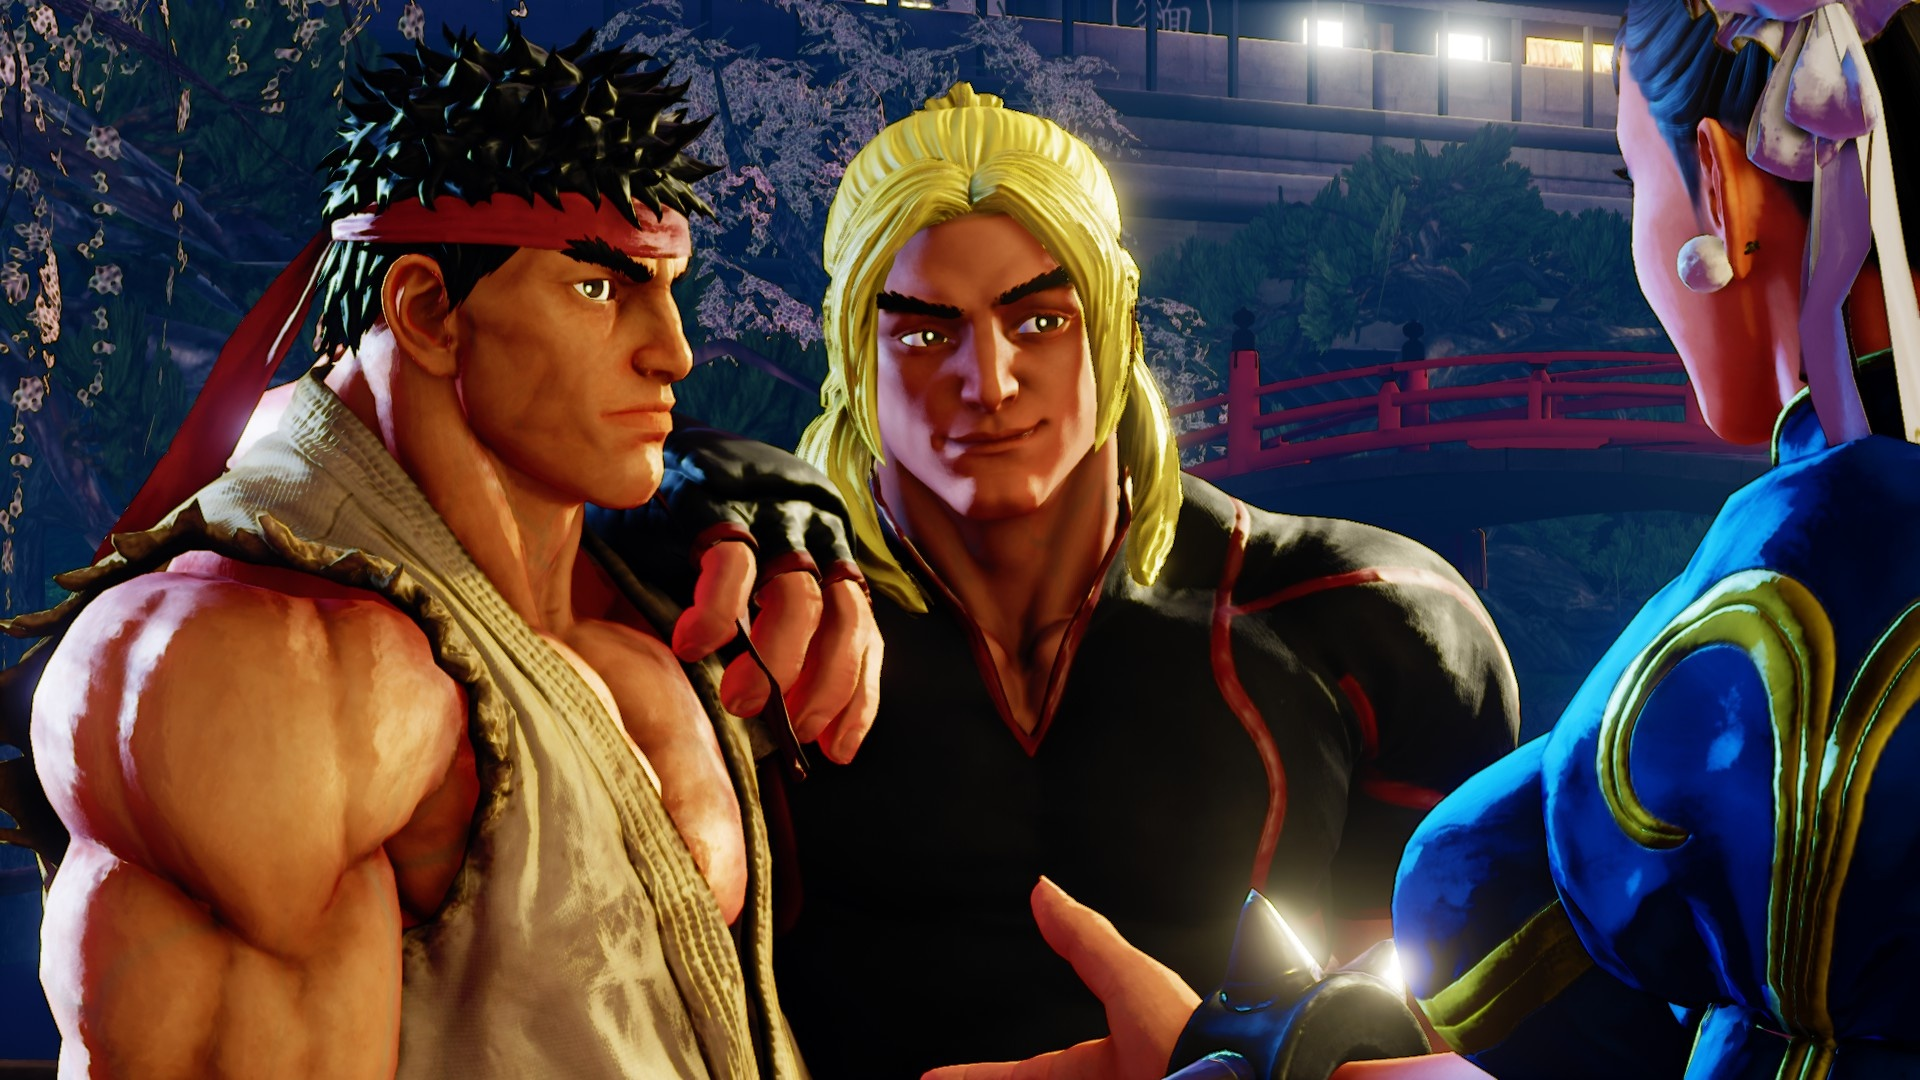 Street Fighter 5 S New Story Mode Nails The Series Cheesy Tone